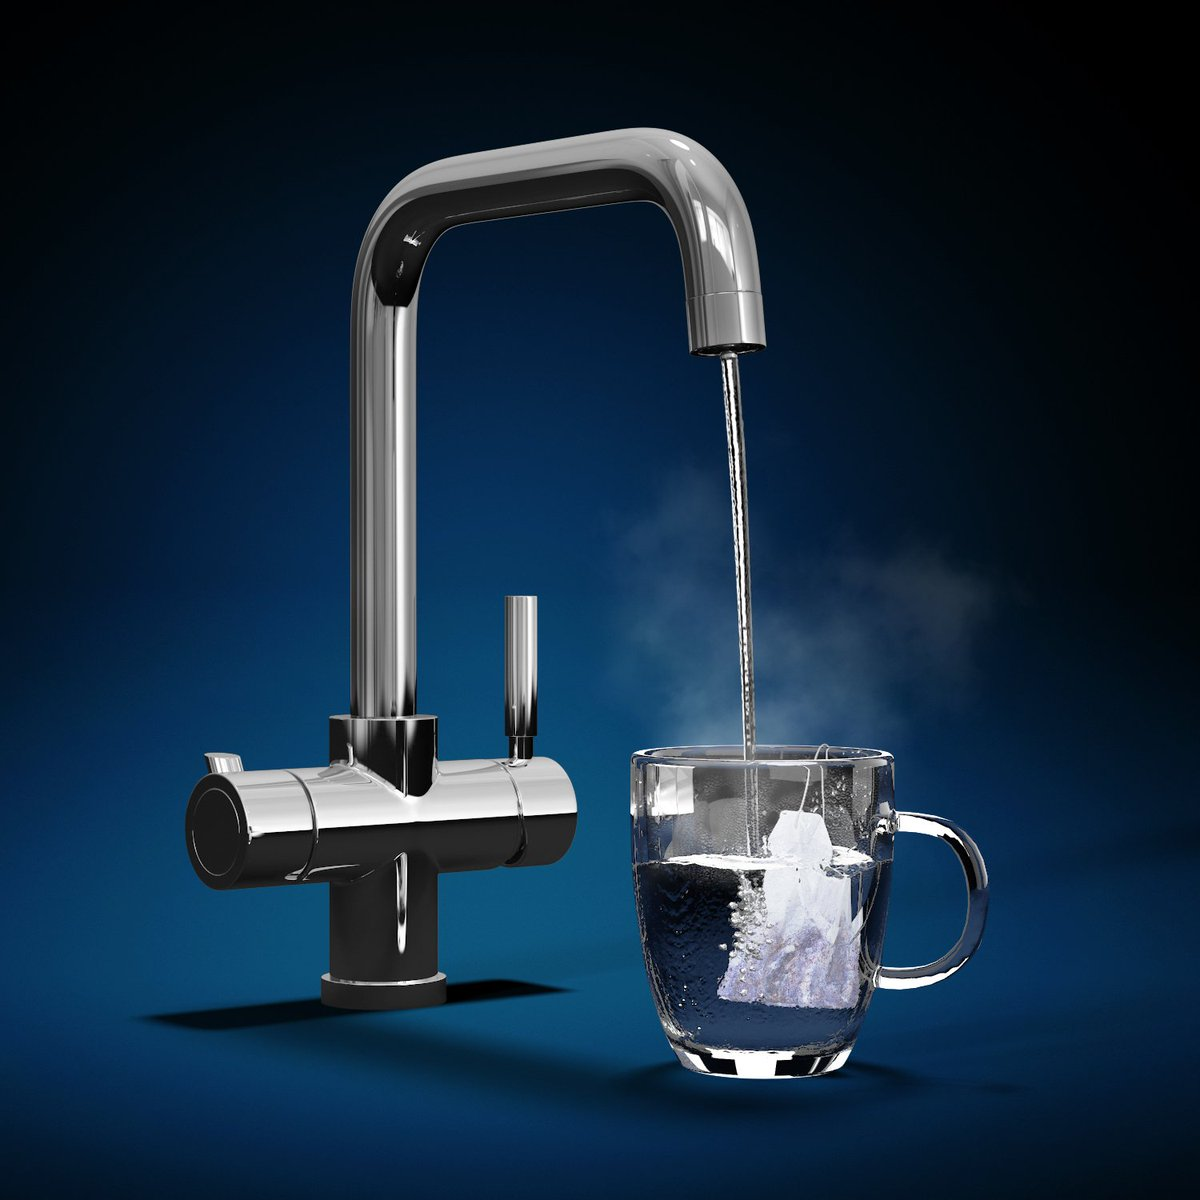 Gold boiling water tap wilko drill